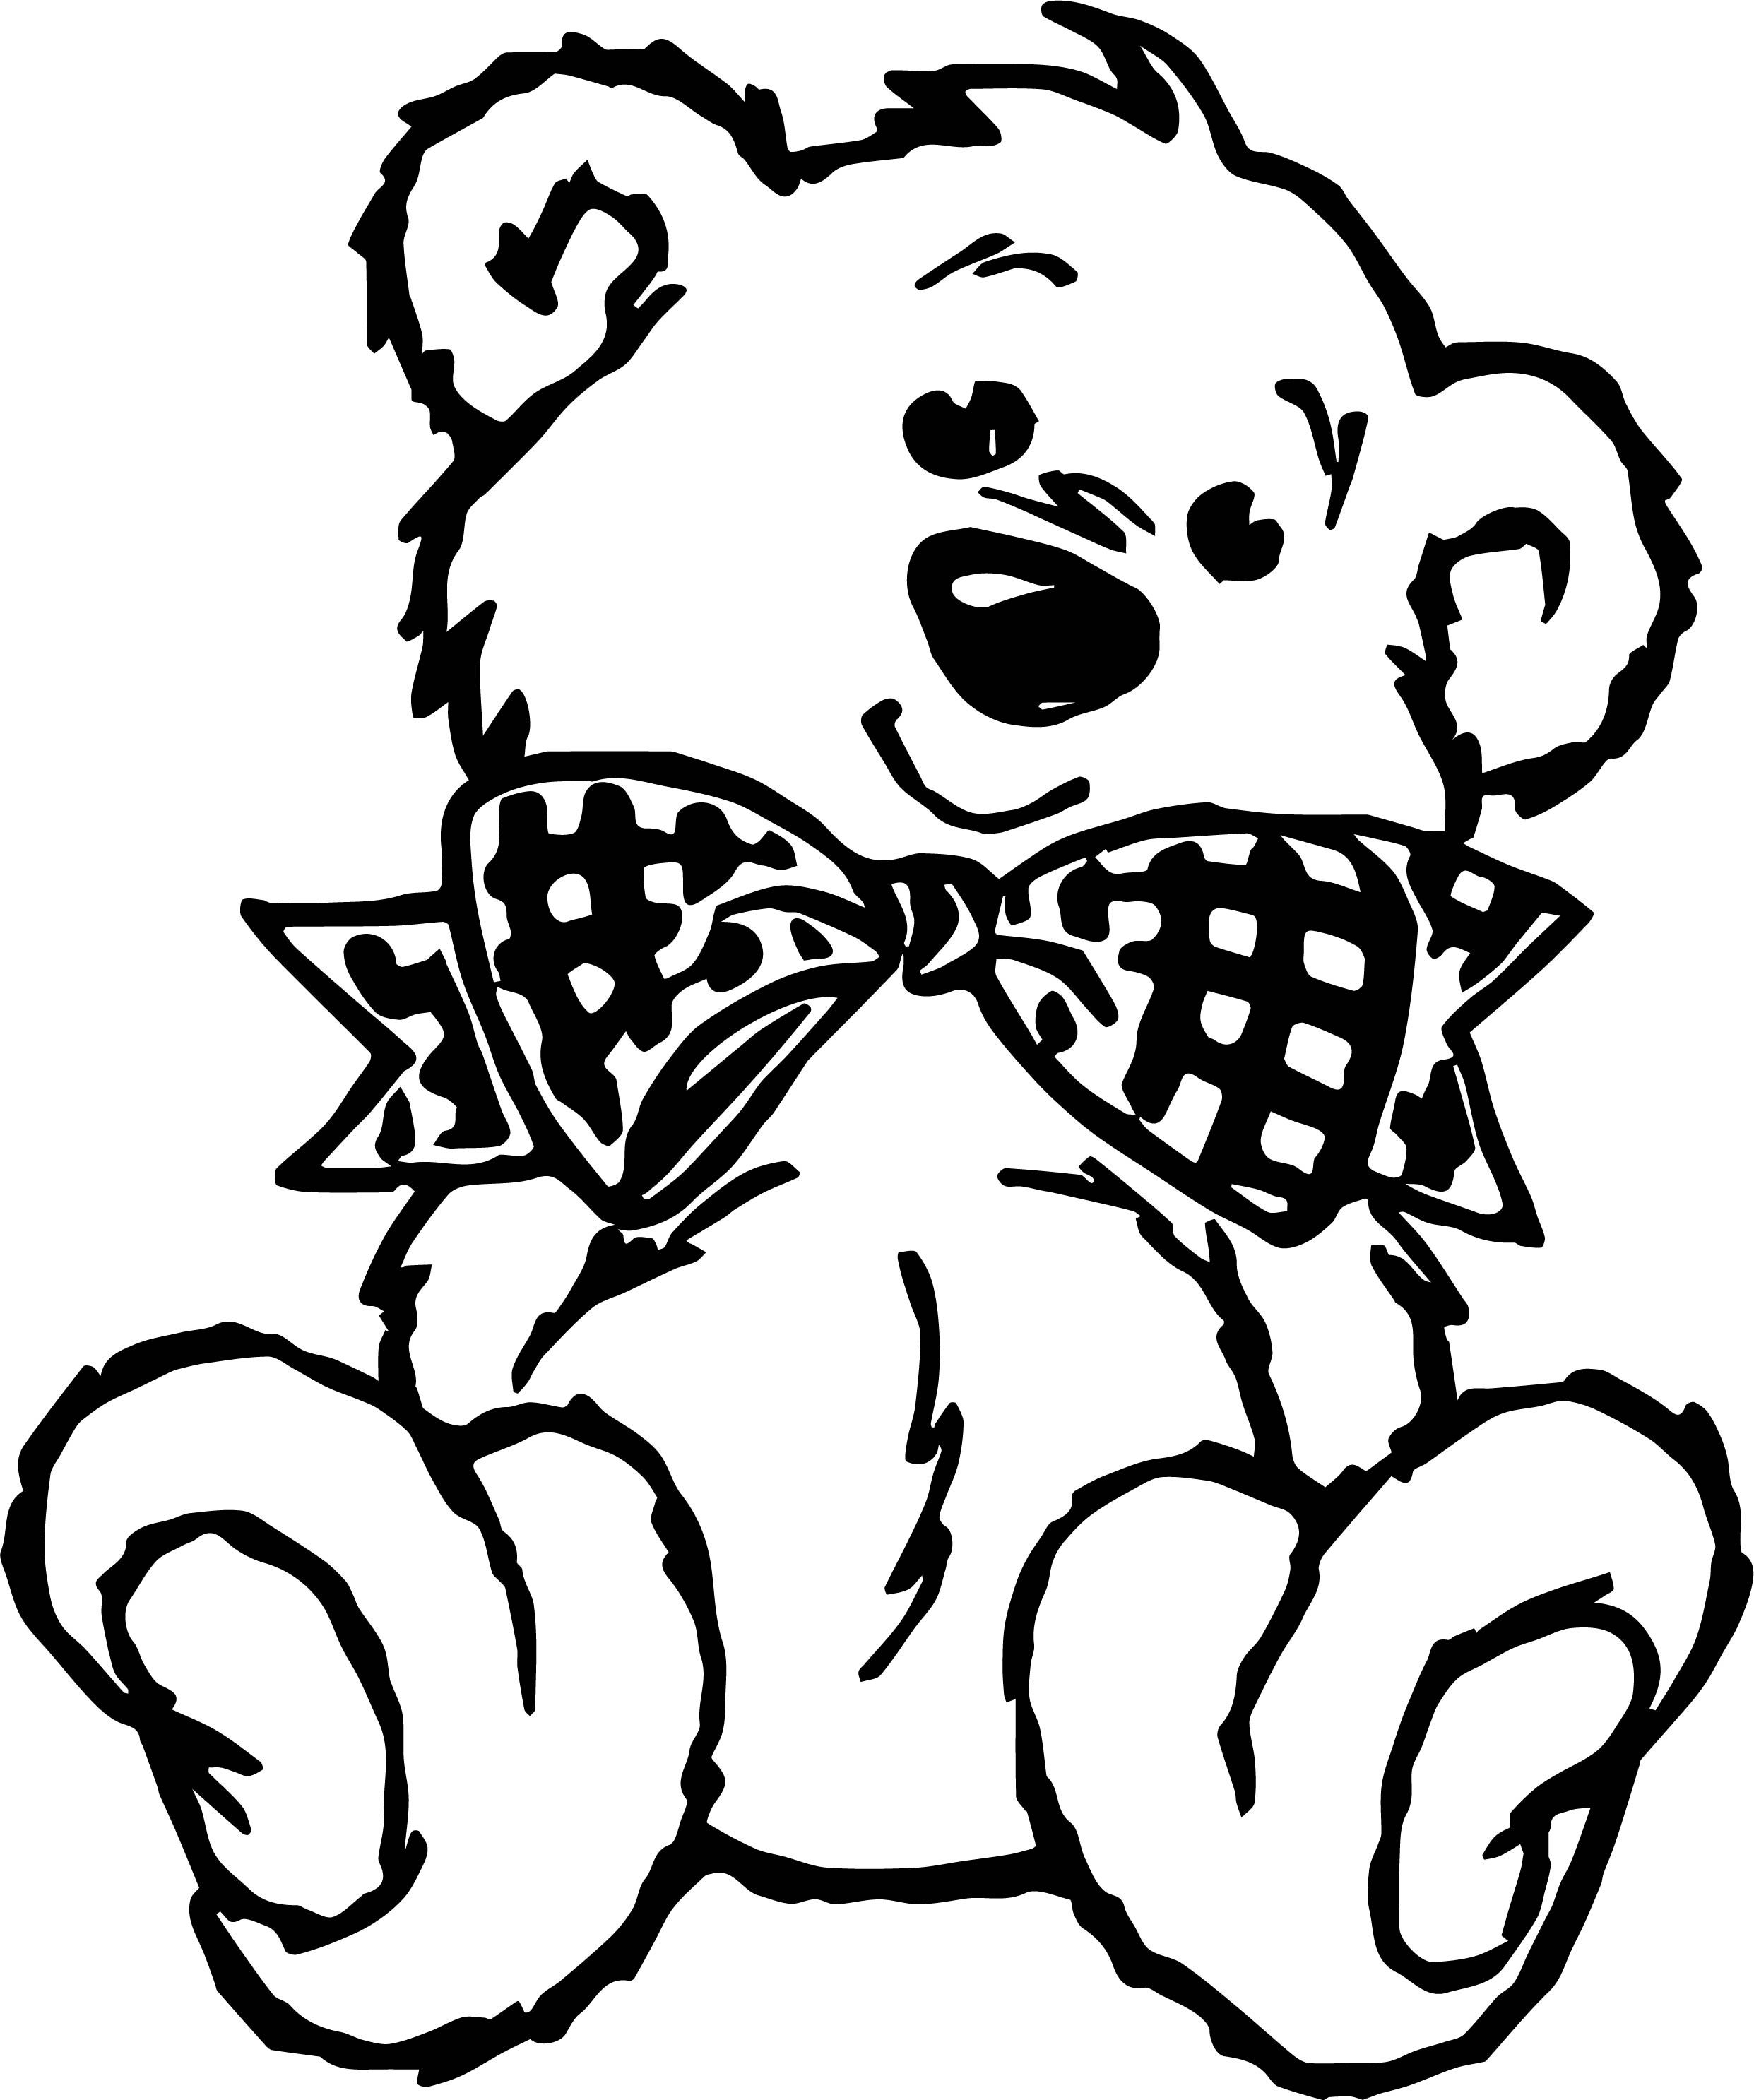 Bear Bow Tie Coloring Page | Bear bows, Coloring pages ...